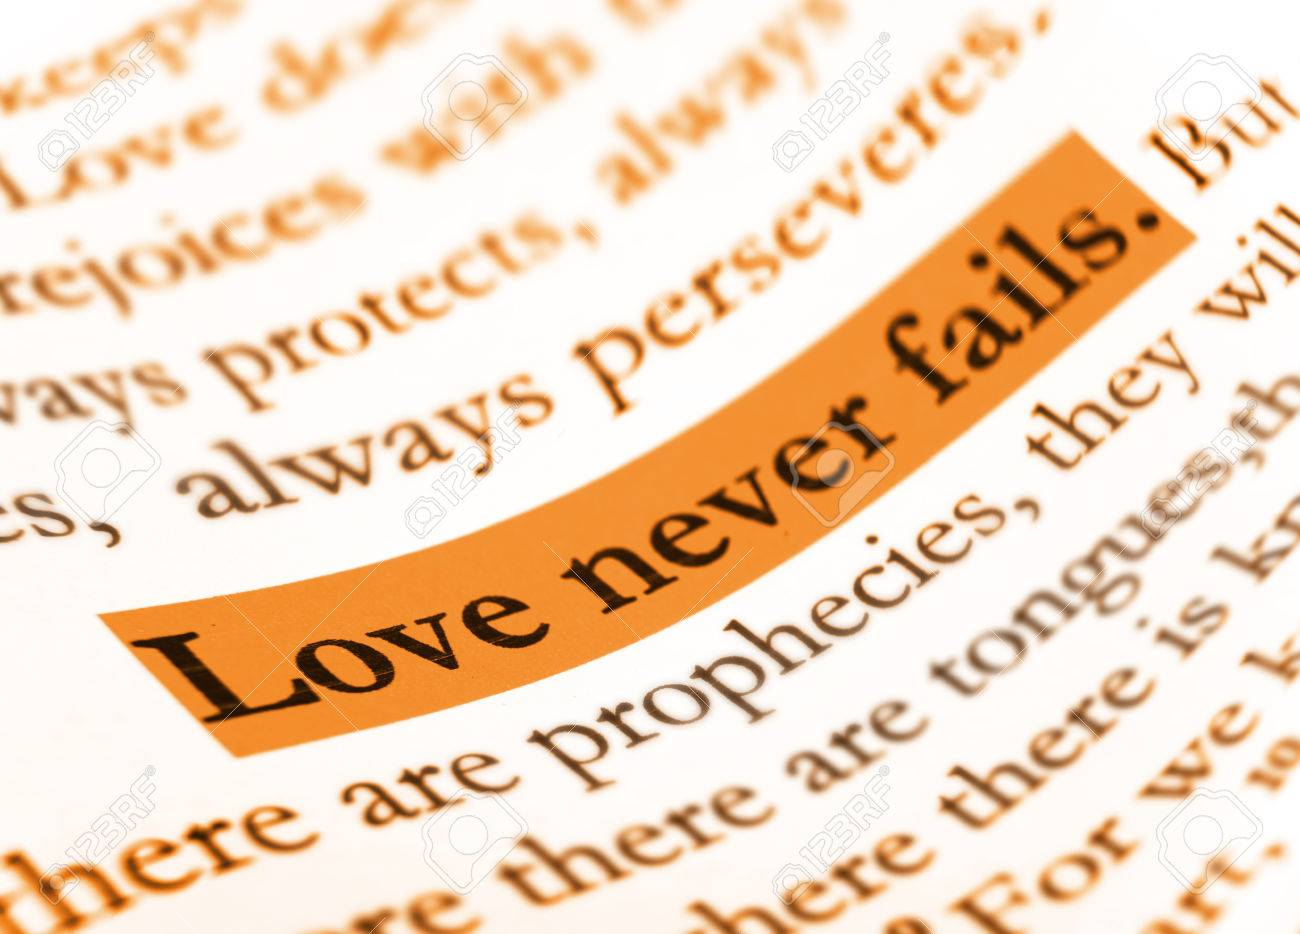 Love never fails on Holy bible. Stock Photo - 28635729